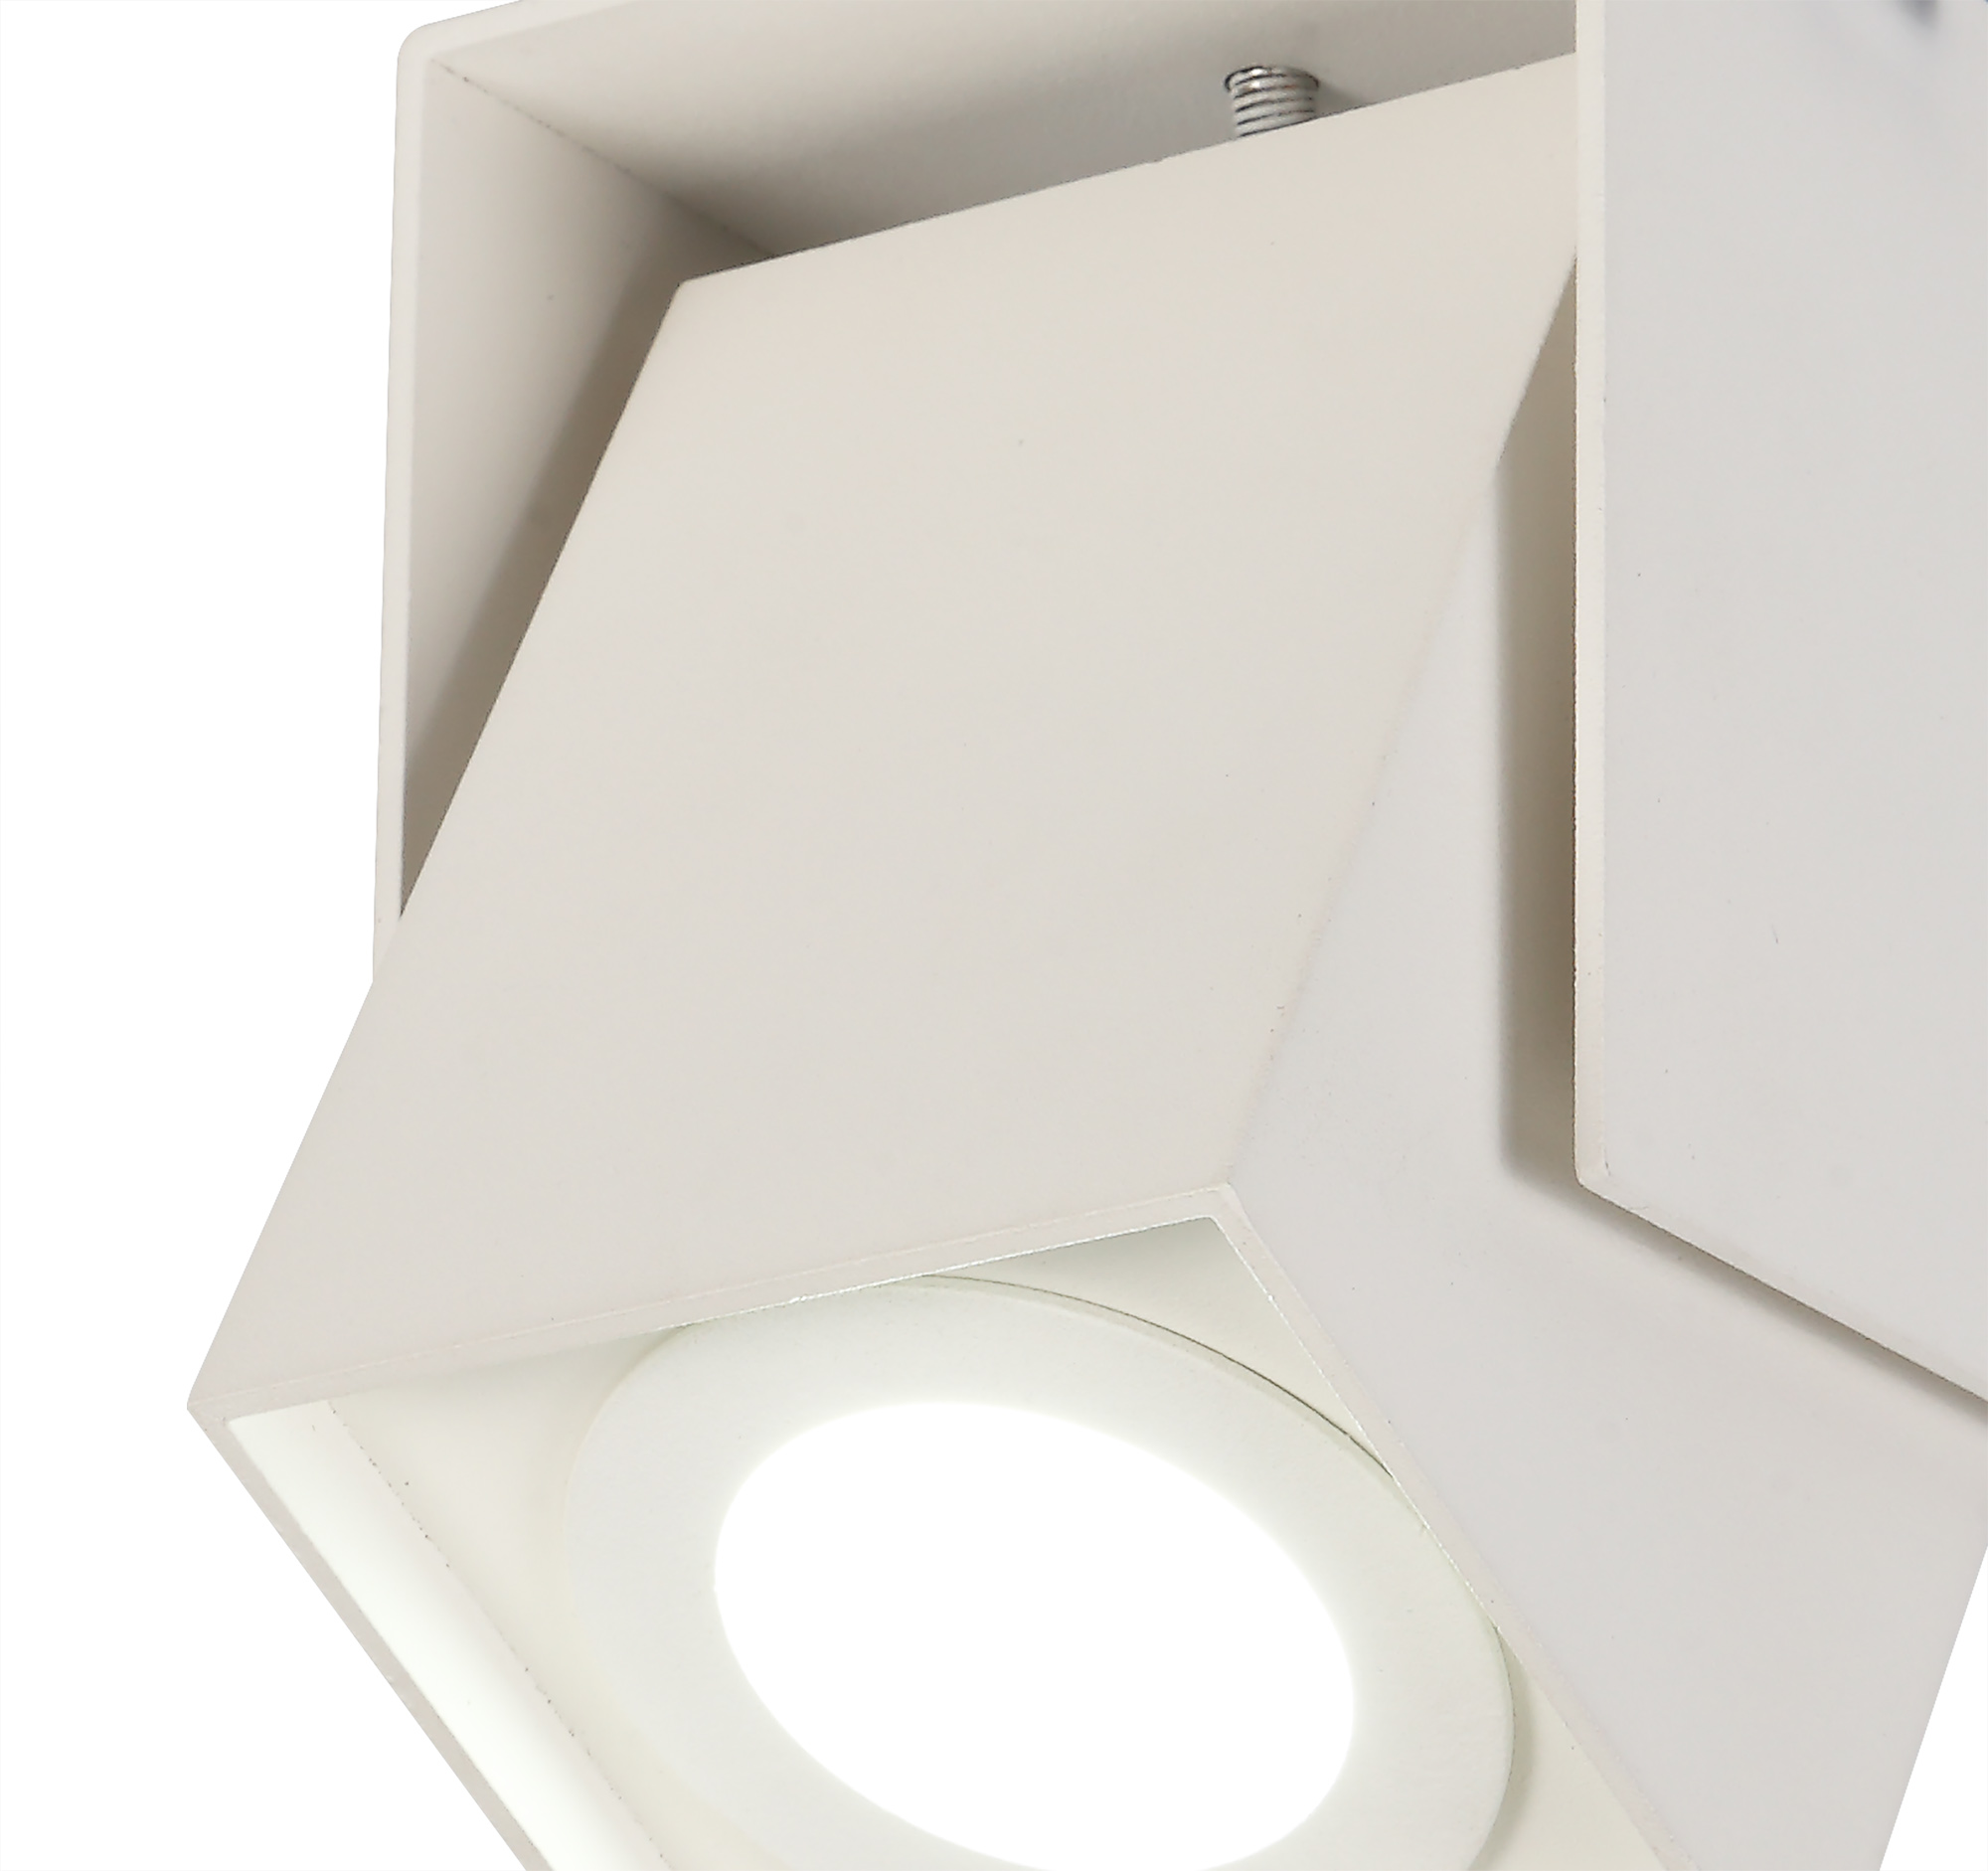 Adjustable Square Spotlight, 1 Light GU10, Cut Out: 62mm